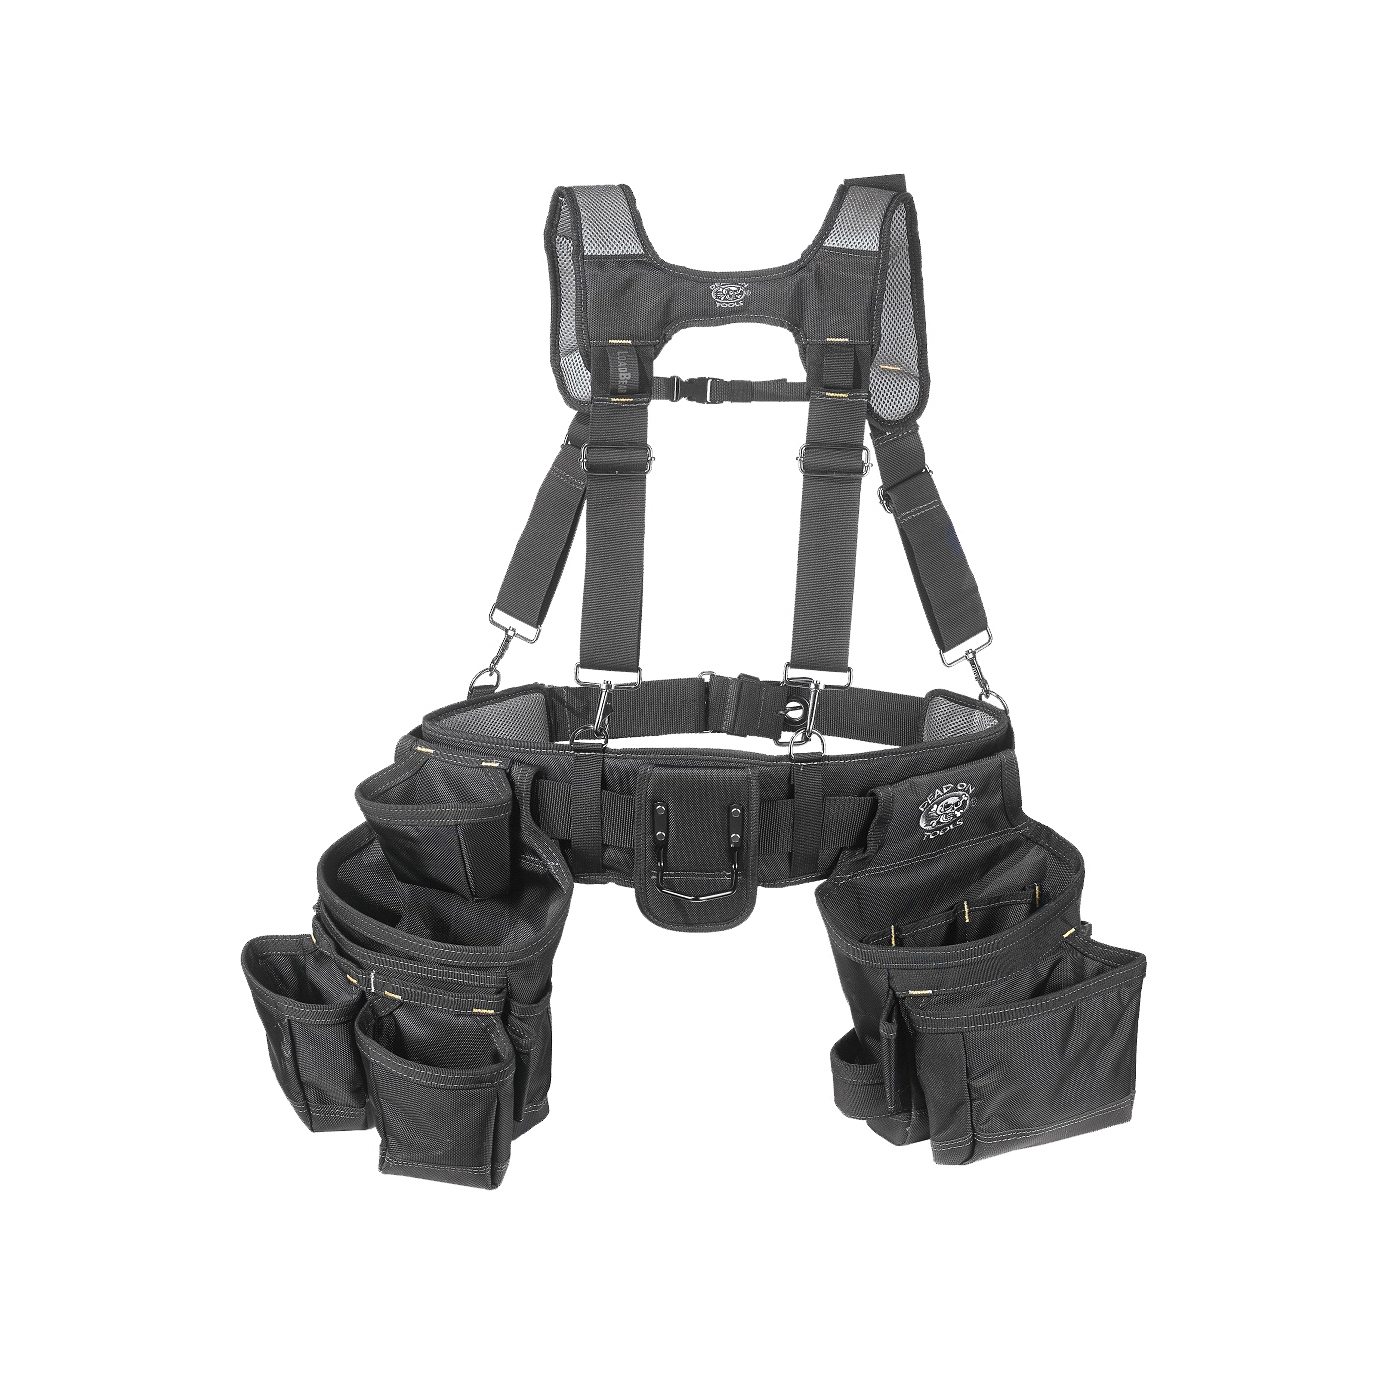 Picture of Dead On HDP400945 Carpenter's Suspension Rig, 52 in Waist, Poly Fabric, Black, 18 -Pocket